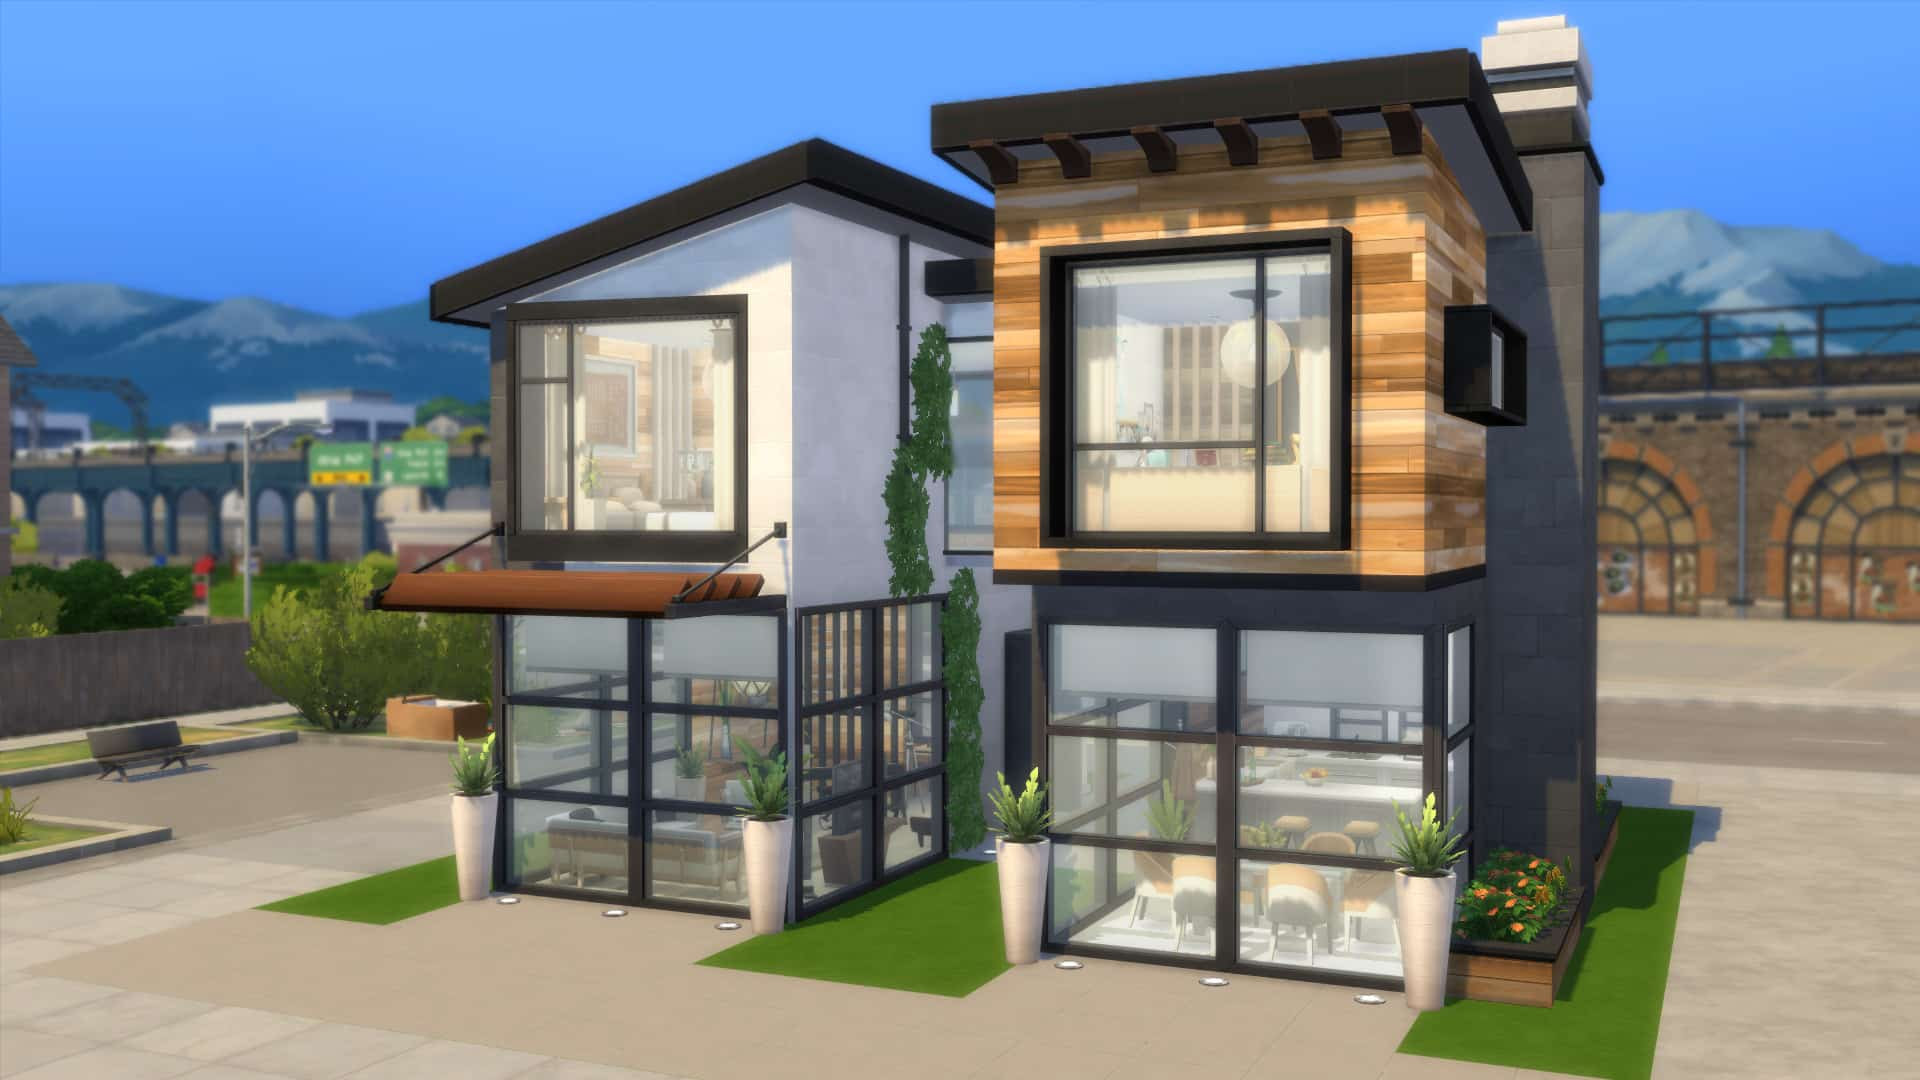 The Sims 20 Eco Lifestyle Builds Gallery Spotlight